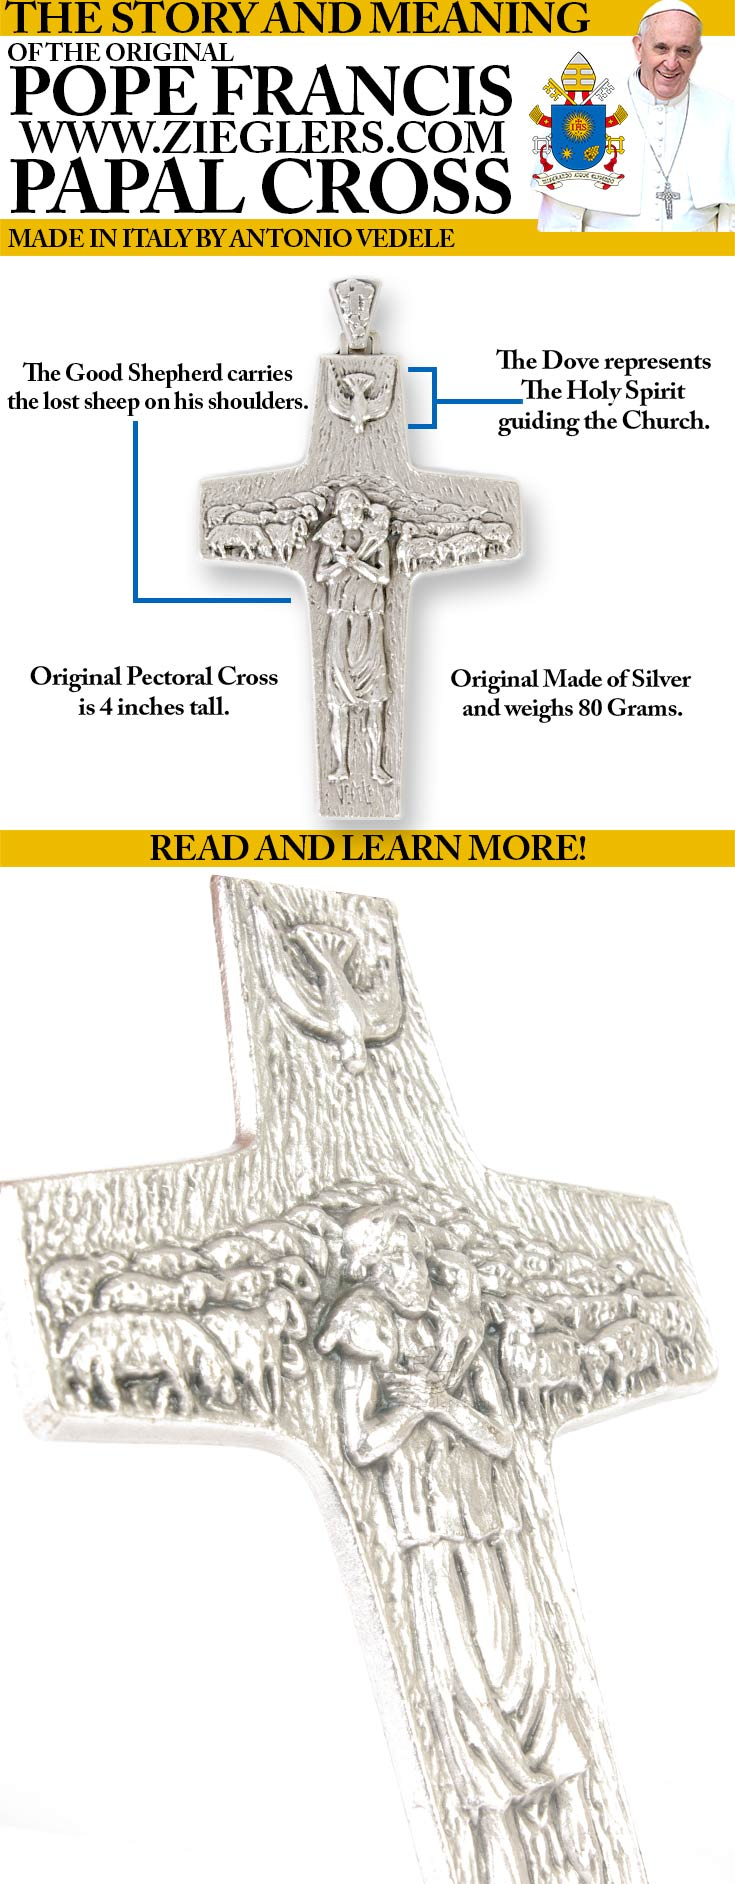 shop Other Pope Francis Gifts and view The original Pope Francis Papal Cross replicas!